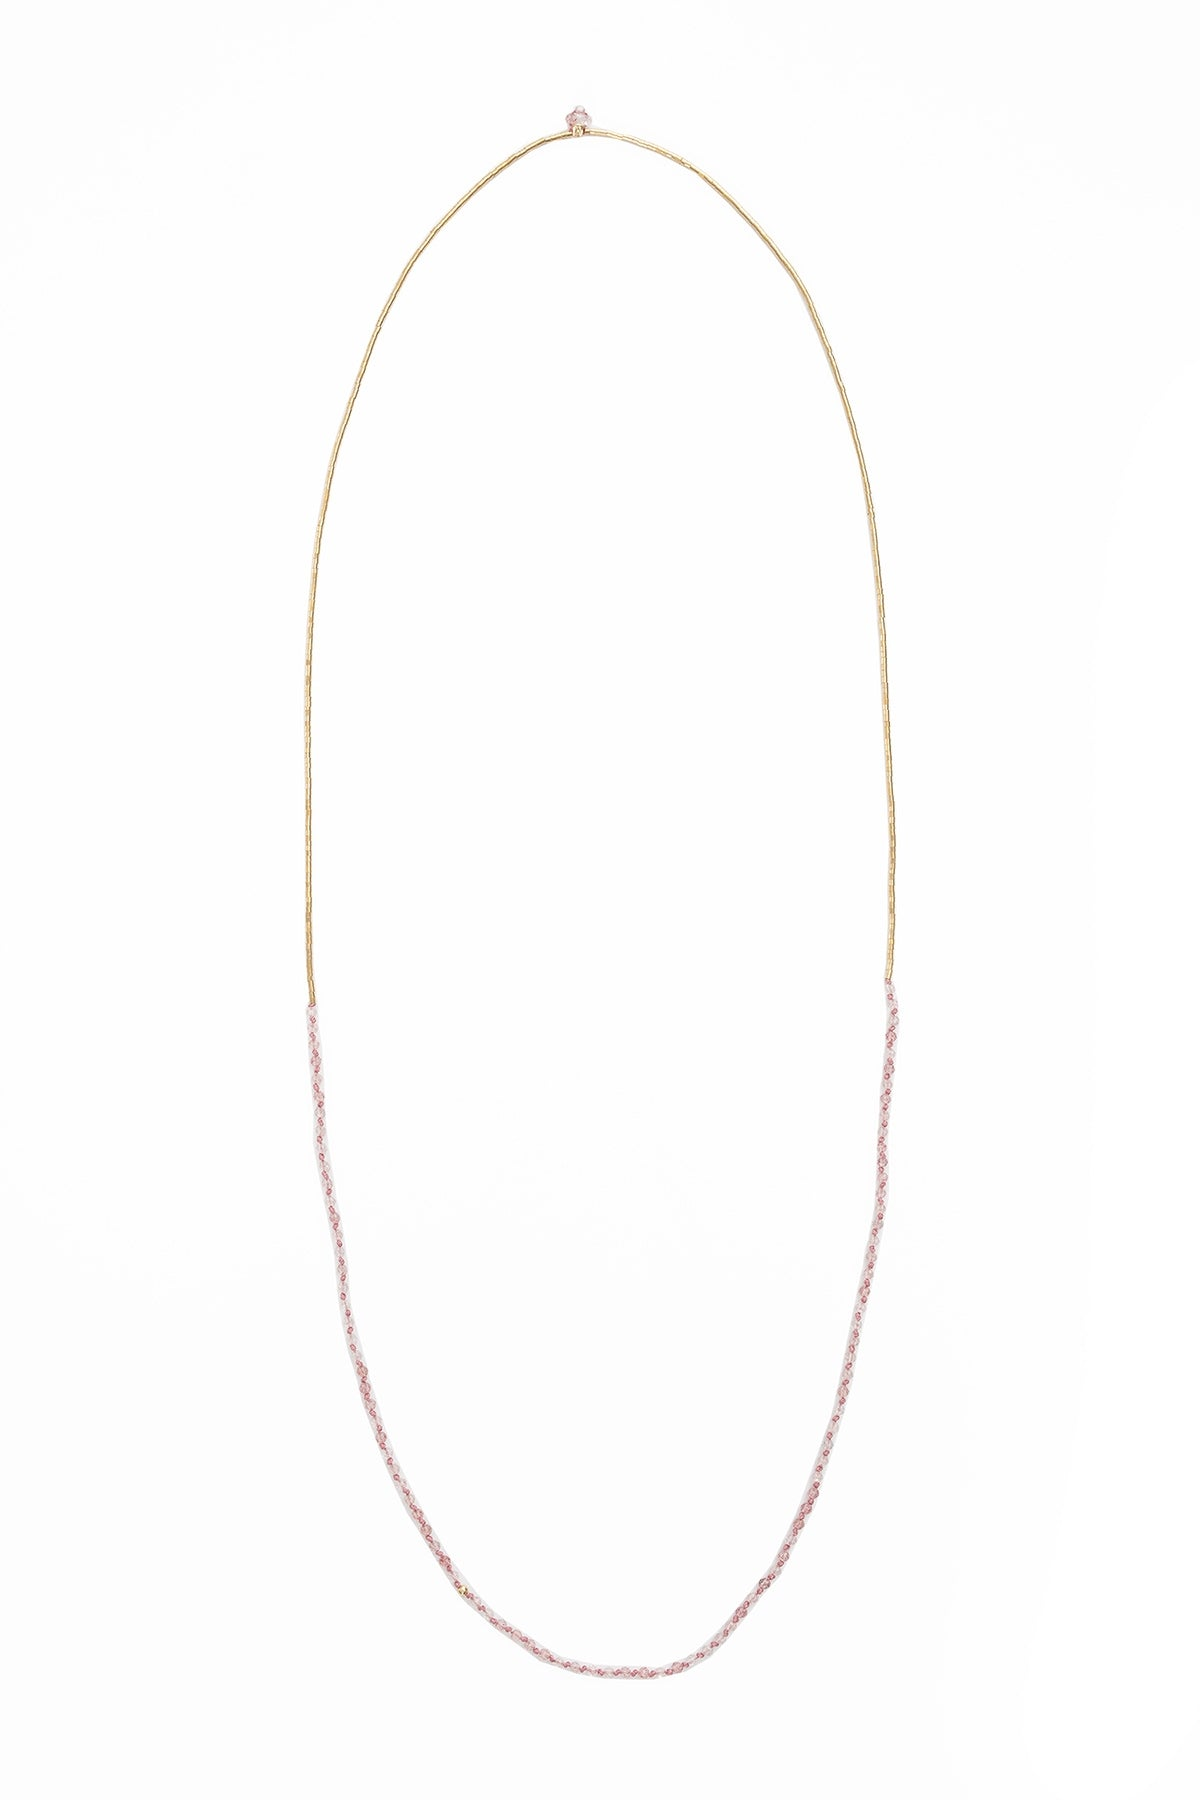 DRIFT KNOTTED STRAWBERRY QUARTZ NECKLACE BY ILD